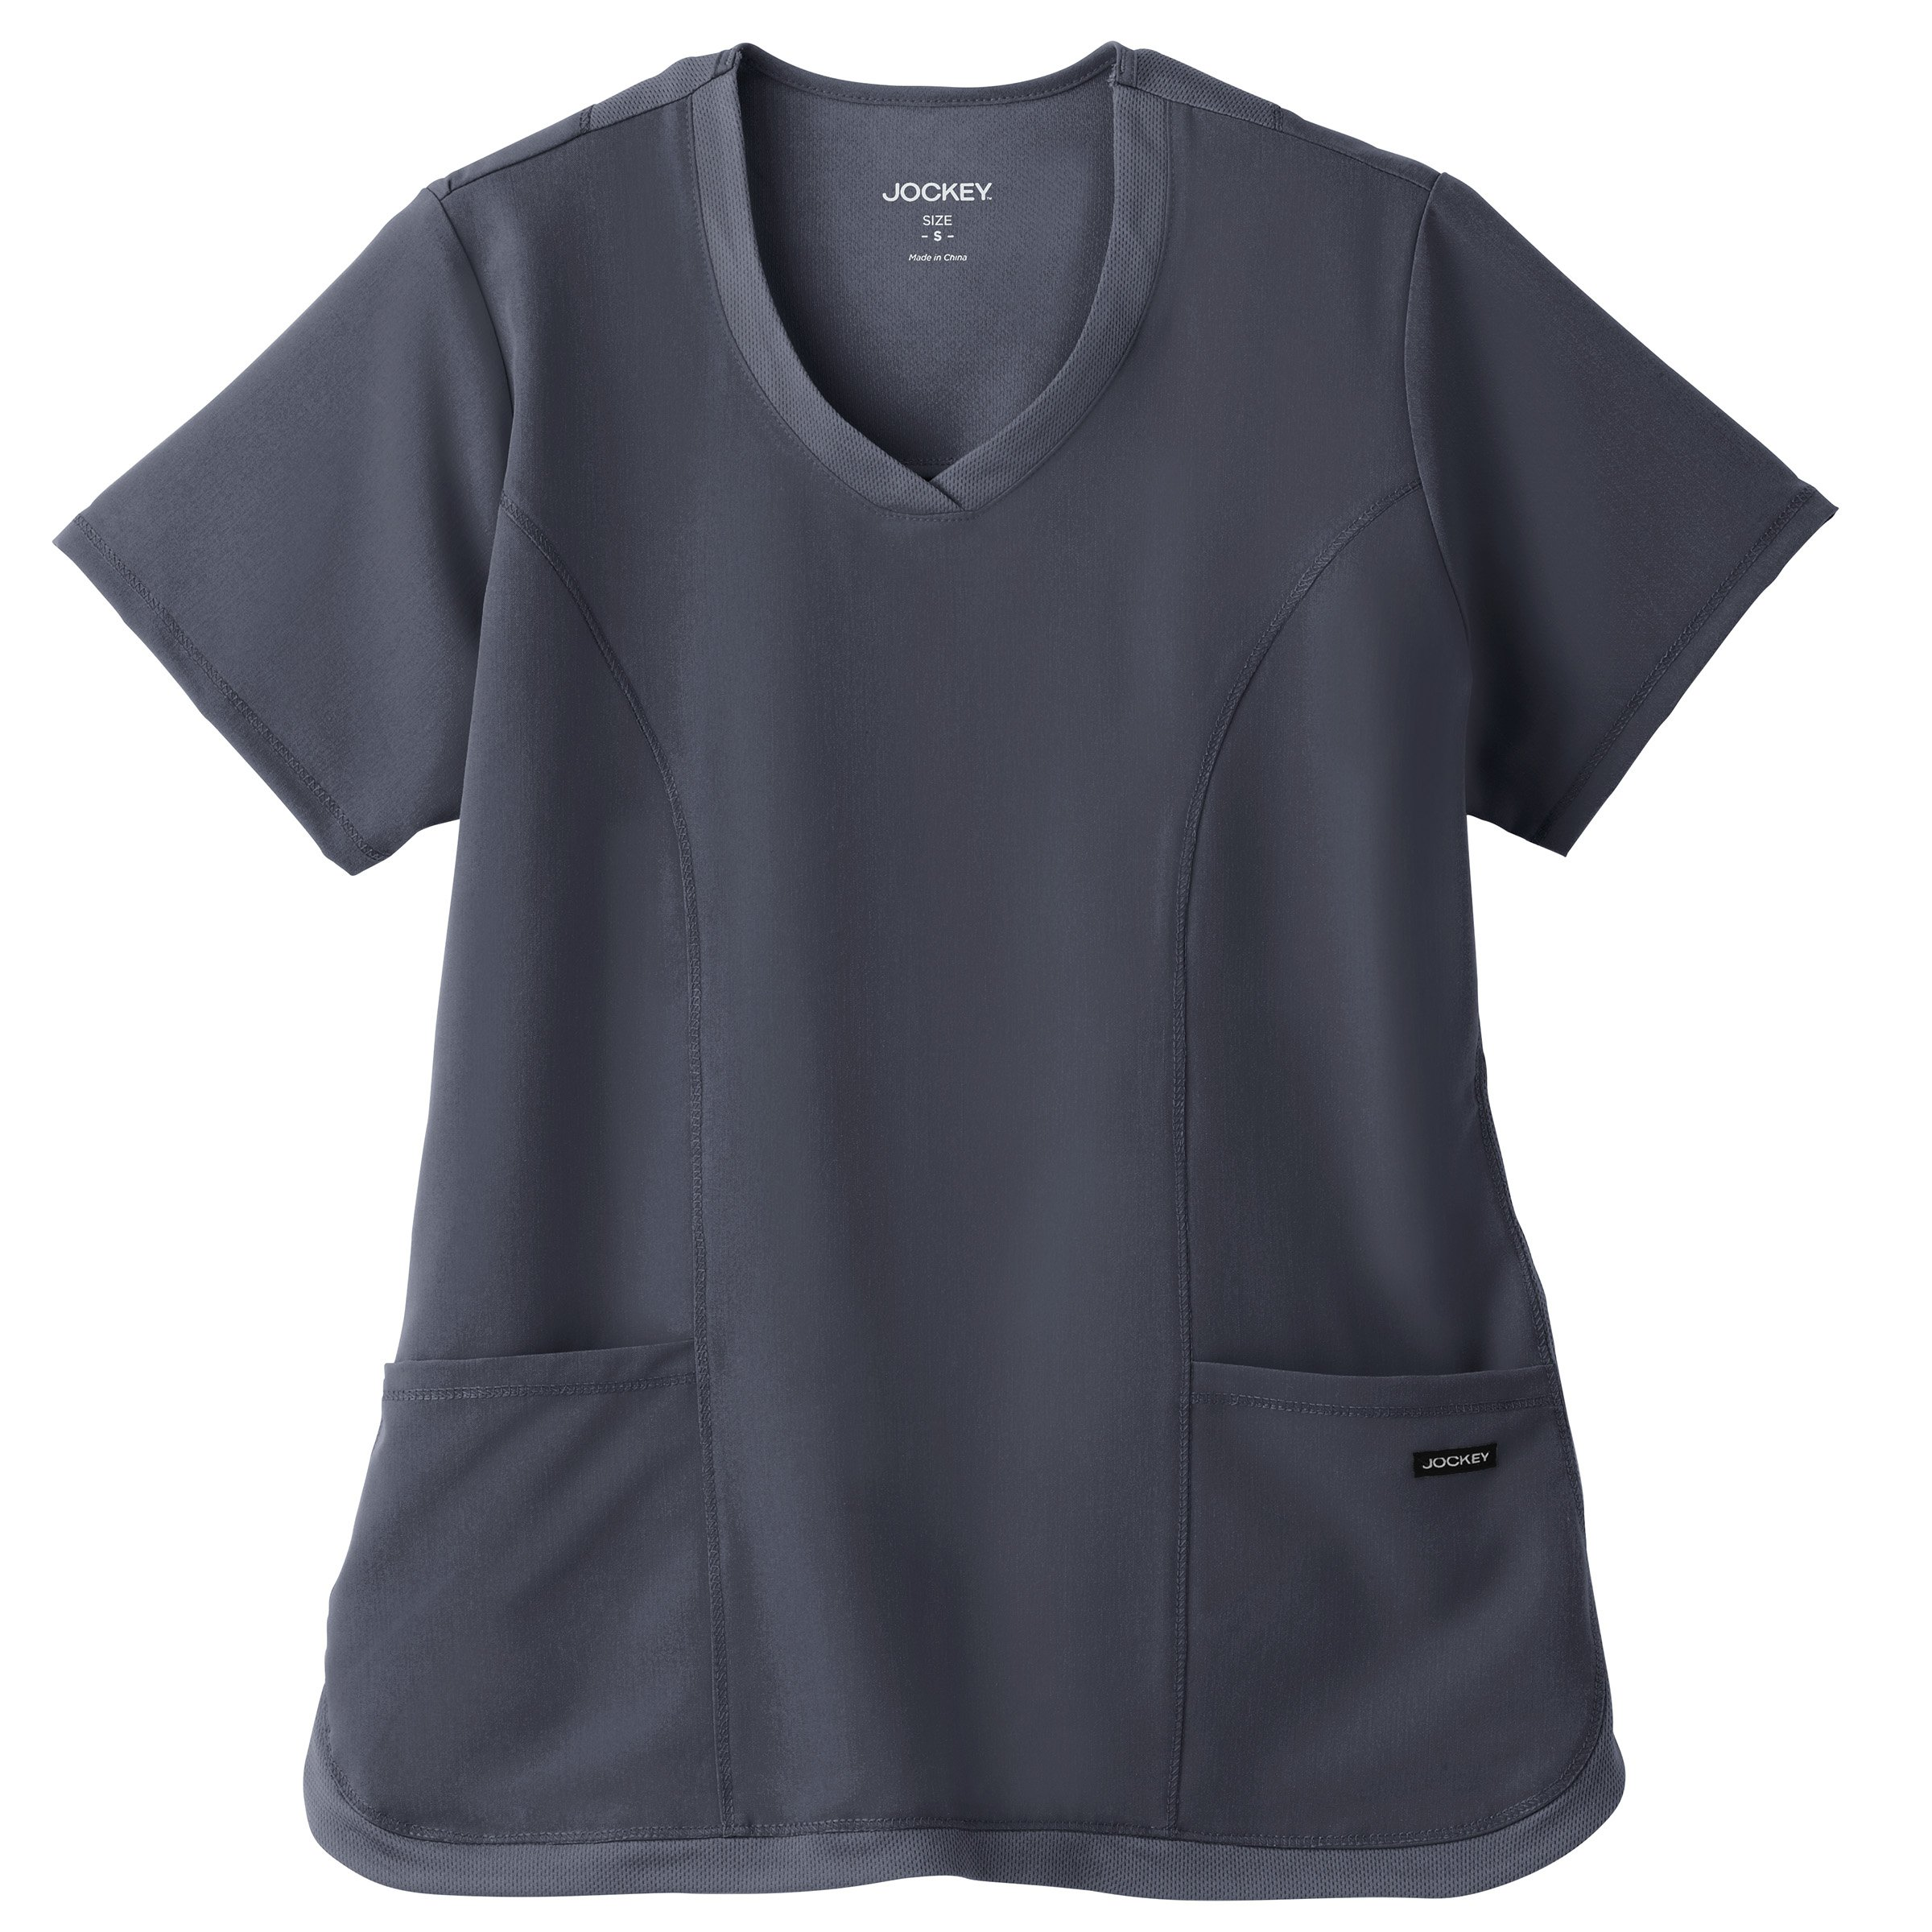 Jockey Women's 2401 Cool Mesh Shirttail 2 Pocket Top- Charcoal- Small